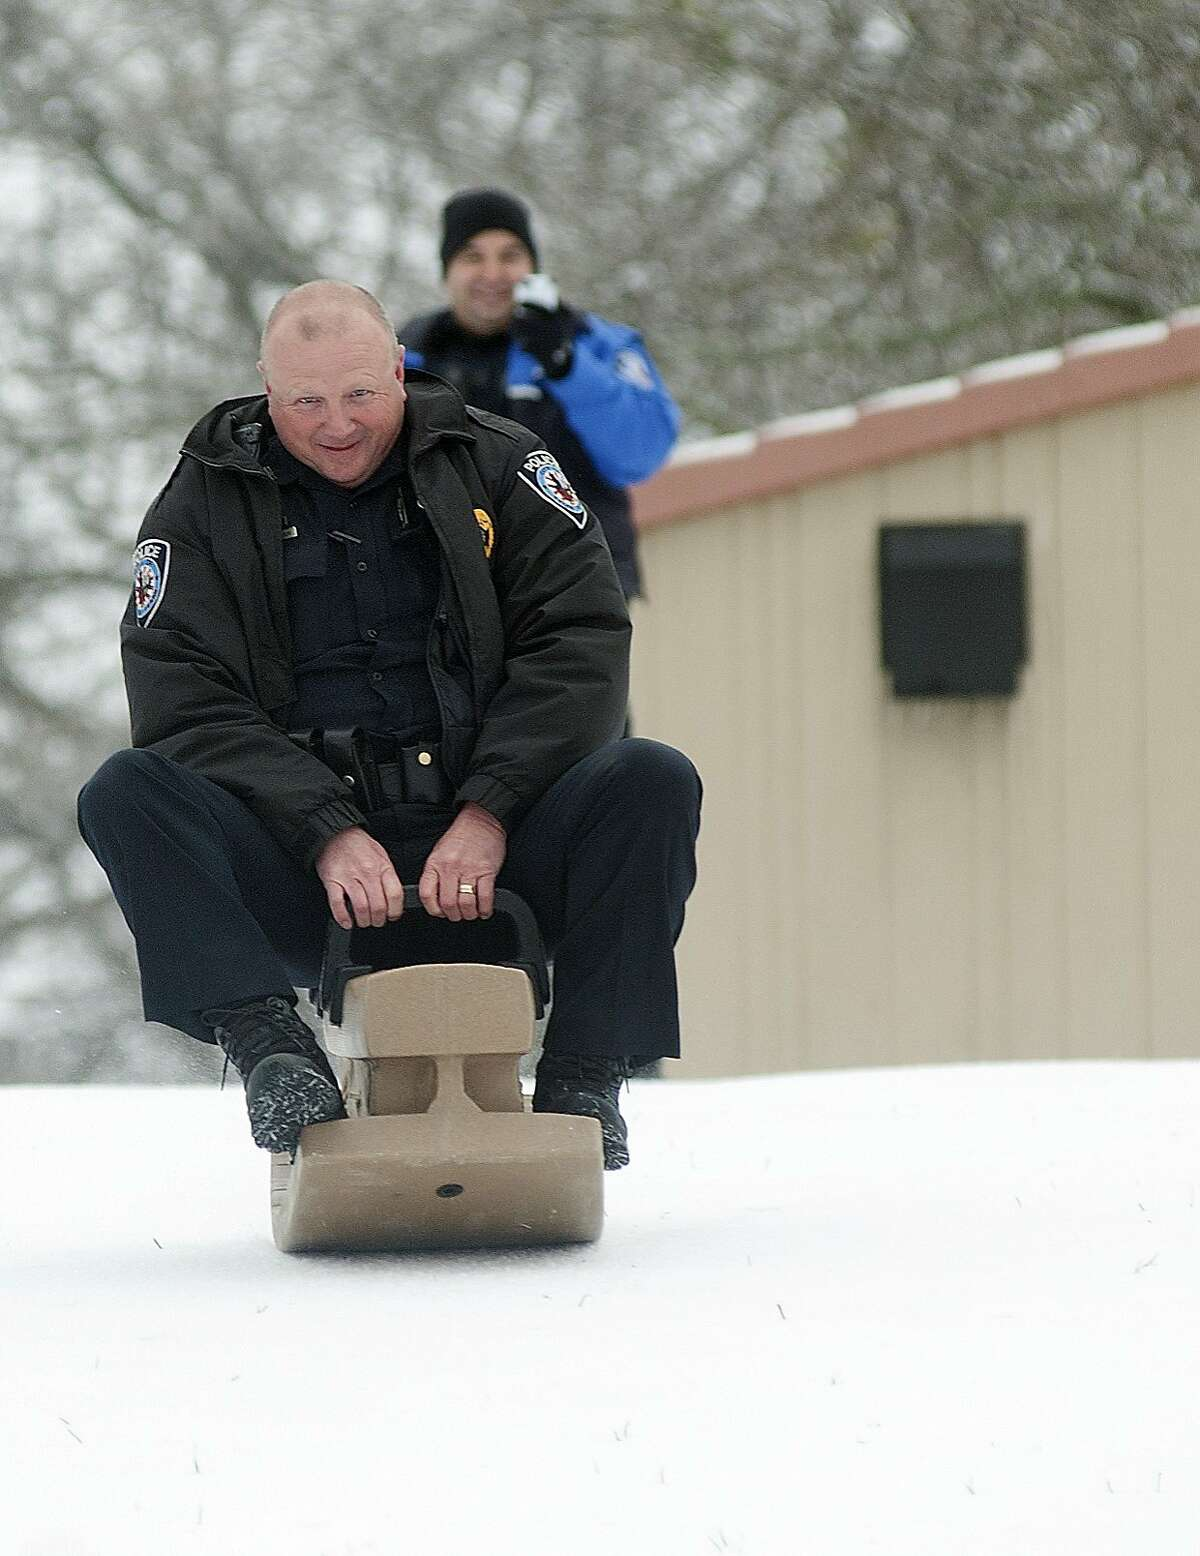 Police investigate sleighing:In Tyler, Texas, Officer Rich Strother commandeers a sled belonging to resident Juan Hernandez and his family (not pictured). Strother and Officer Luis Aparicio made a stop at Woldert Park to spend a few minutes with Hernandez's family, who were enjoying a day off from work and school due to the new snow.